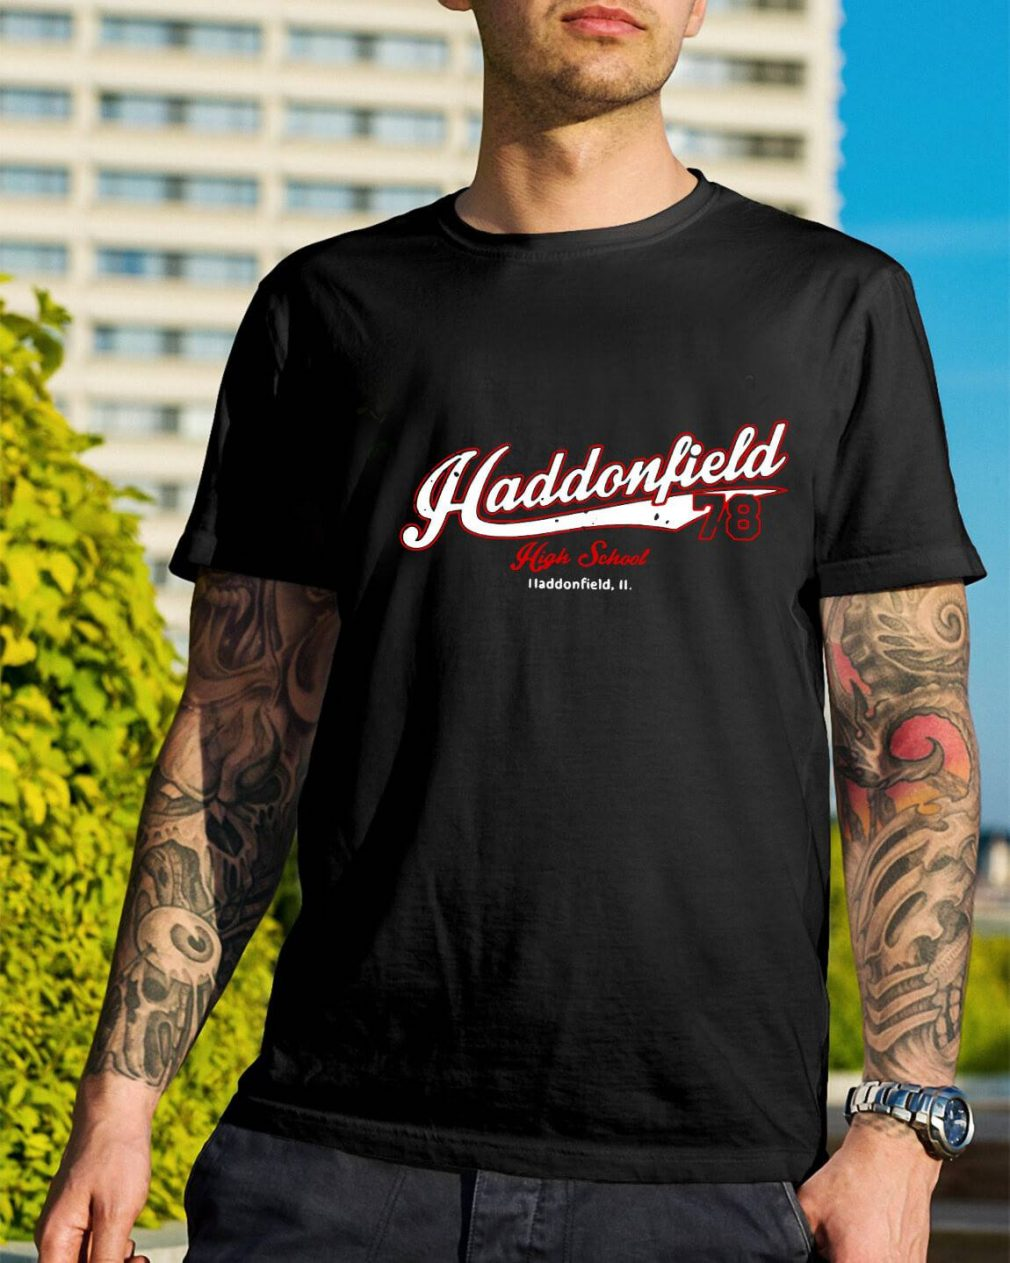 Haddonfield 78 high school I Haddonfield II shirt